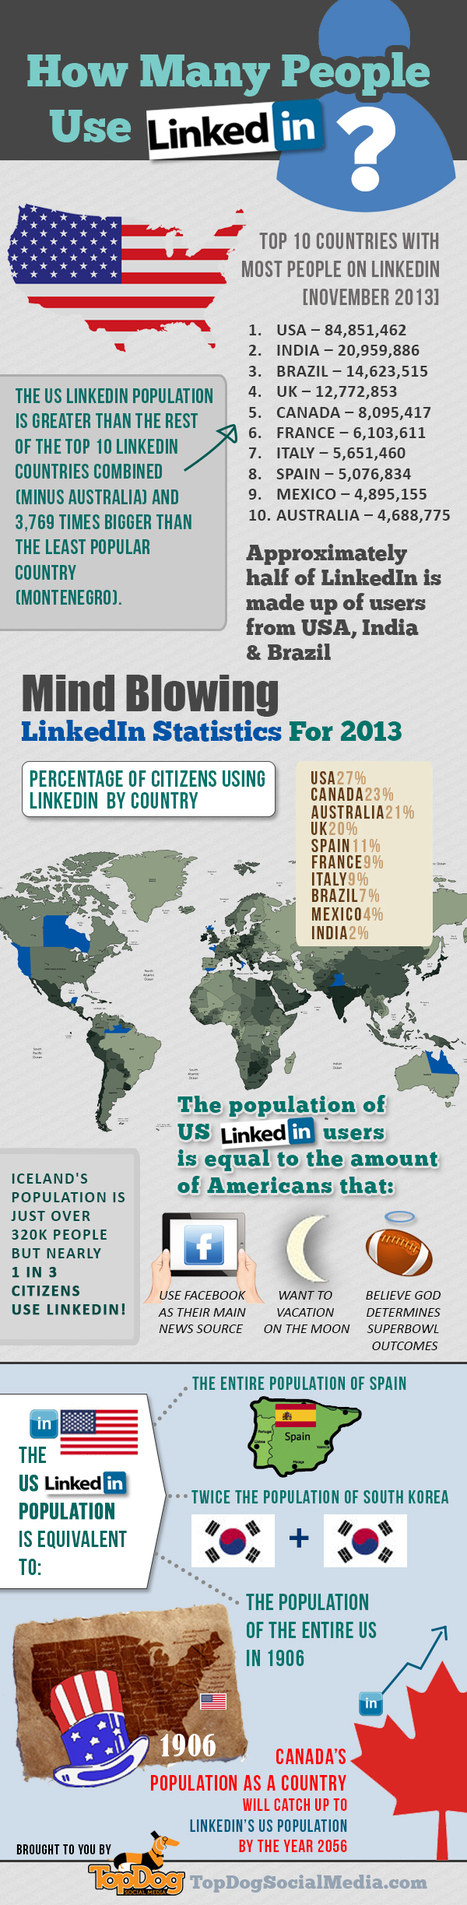 How Many People Use LinkedIn? [Infographic] | OPTIMISER SA PRESENCE SUR LINKED IN VIA SCOOP.IT ET PHILIPPE TREBAUL | Scoop.it